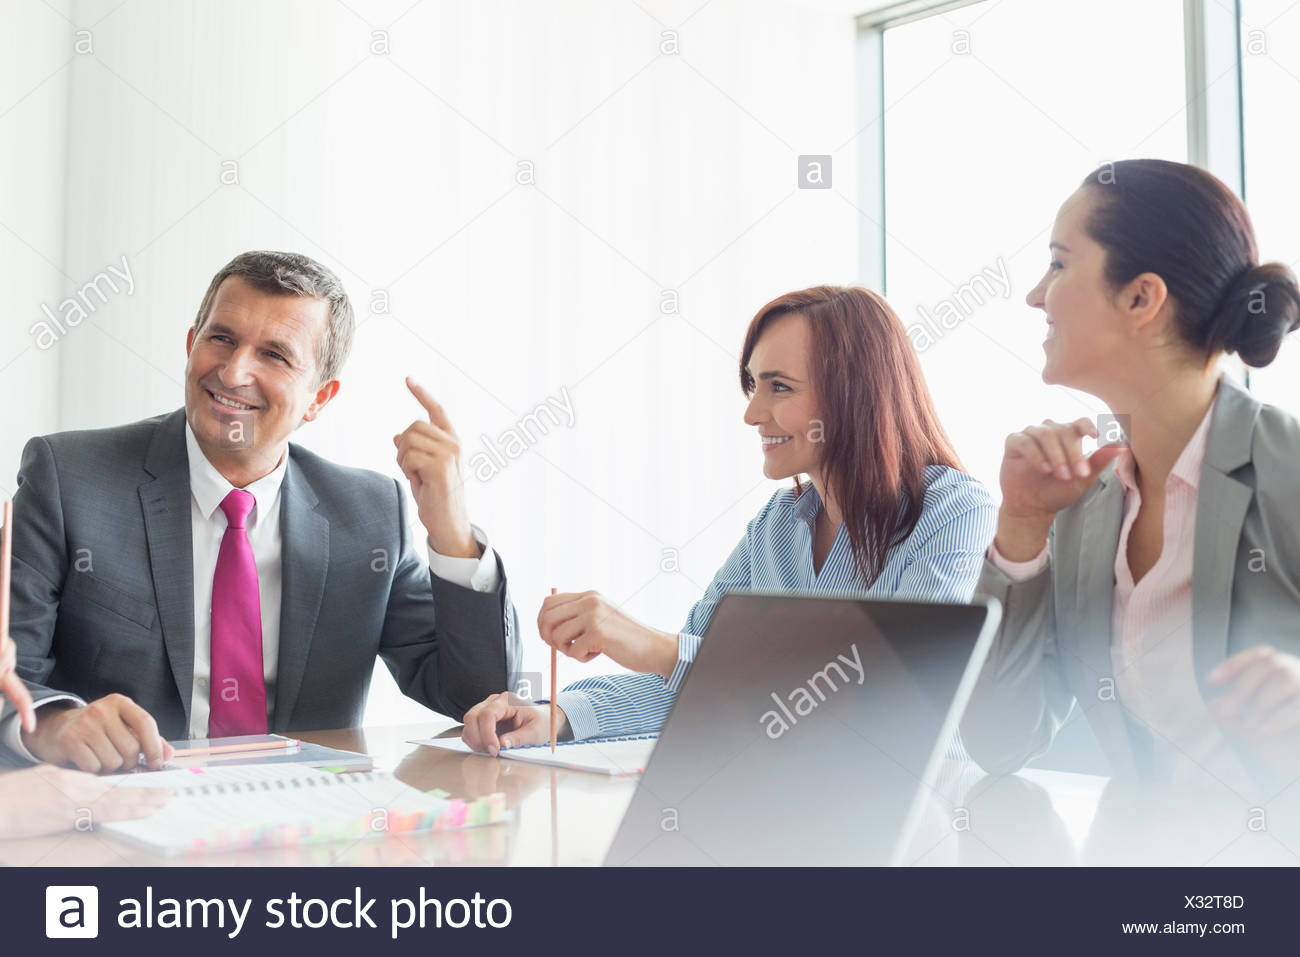 Business meeting in boardroom - Stock Image